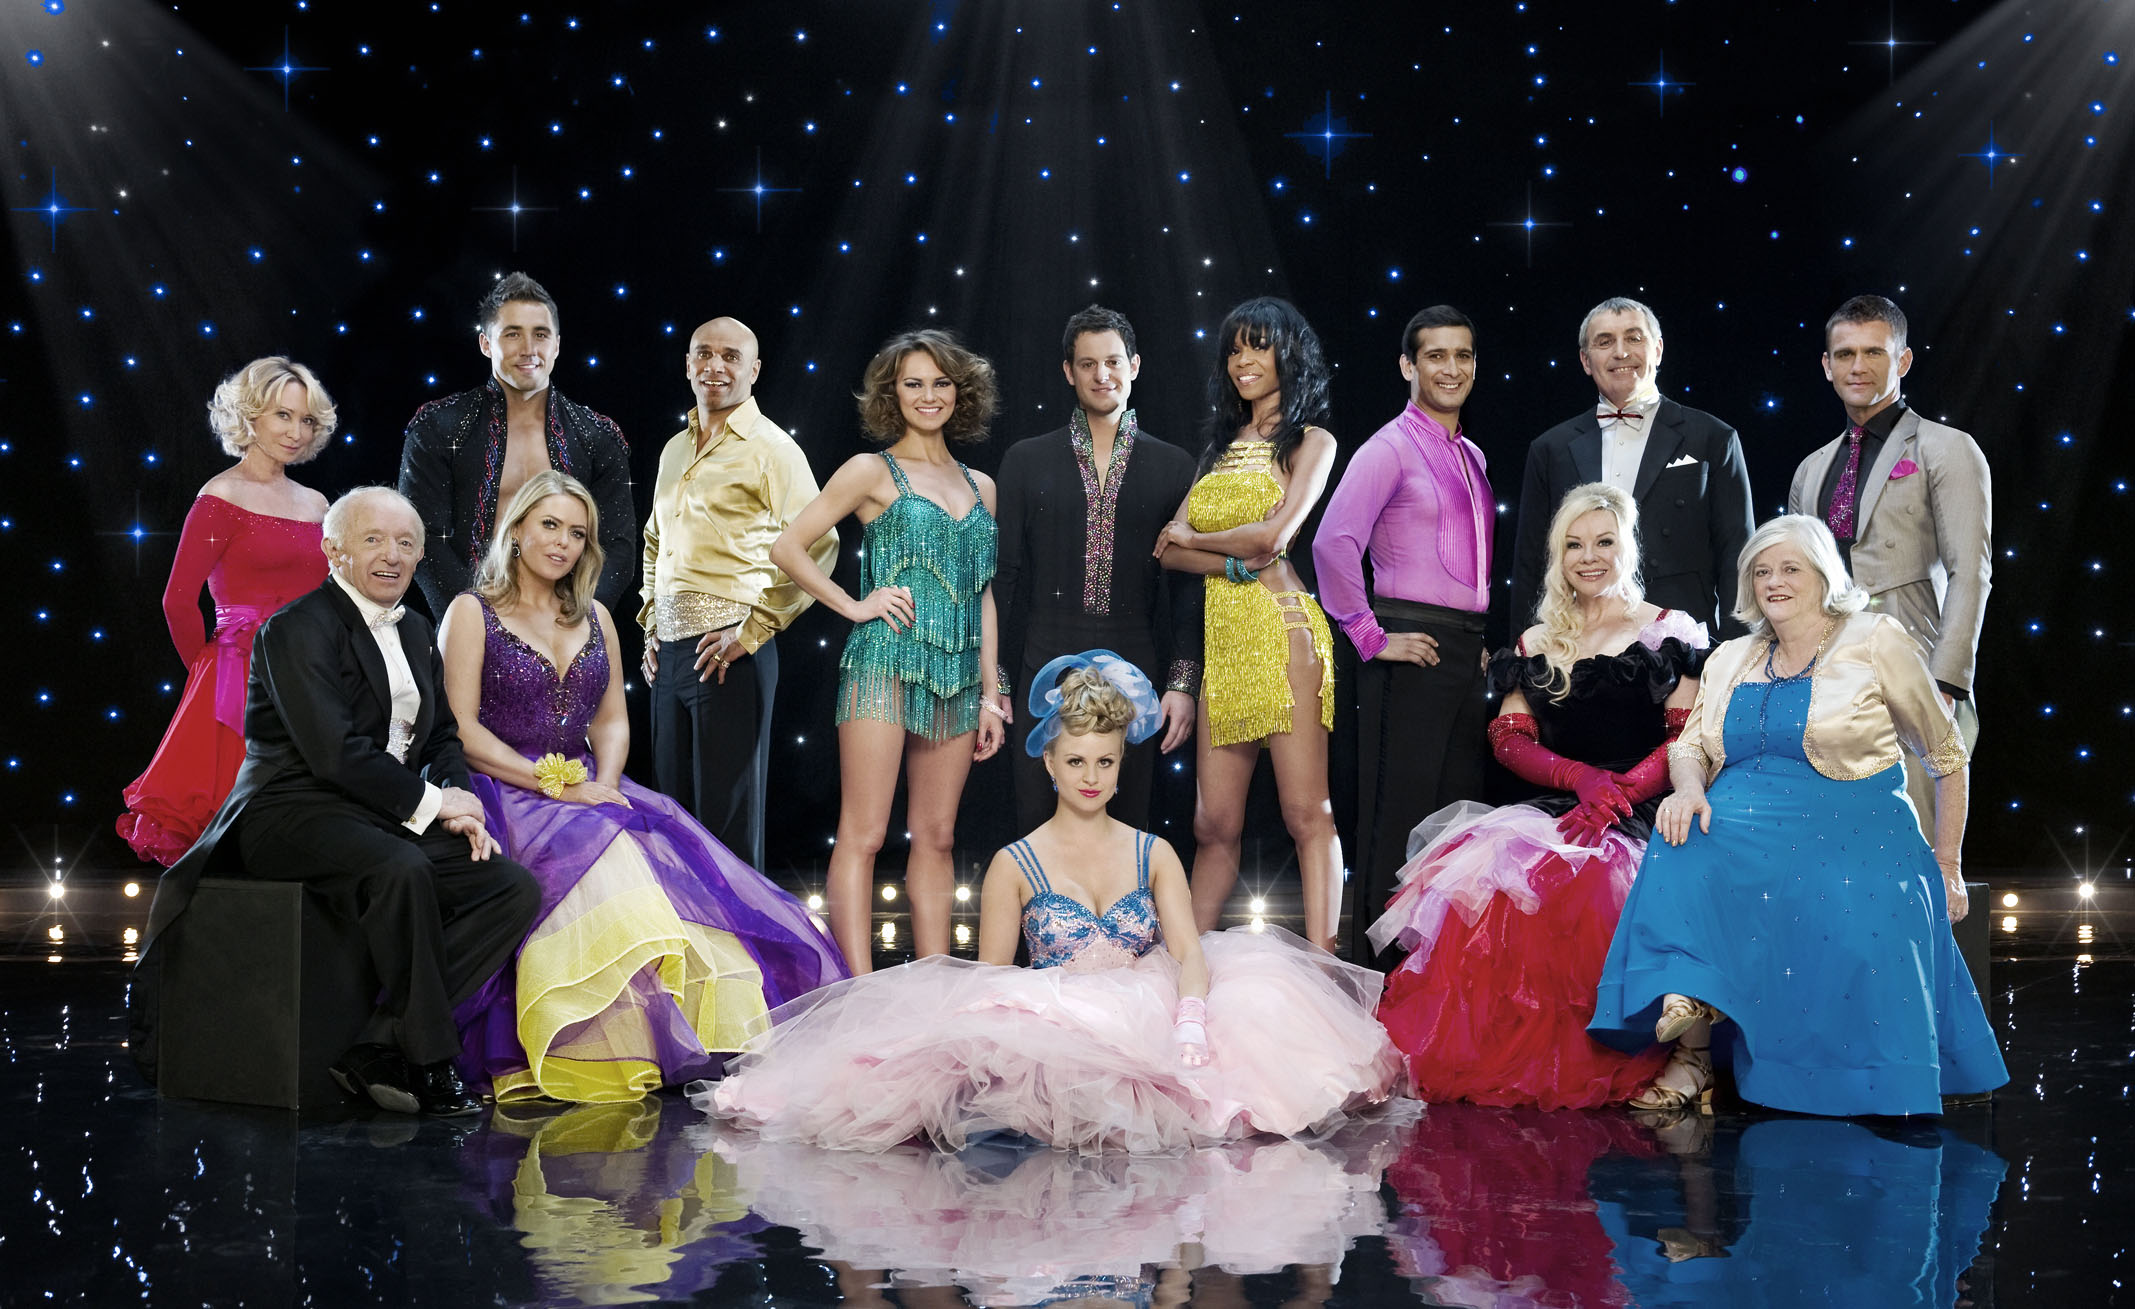 The cast of BBC show Strictly Come Dancing 2010. Picture shows: Standing l-r: Felicity Kendal, Gavin Henson, Goldie, Kara Tointon, Matt Baker, Michelle Williams, Jimi Mistry, Peter Shilton, Scott Maslen. Seated l-r: Paul Daniels, Patsy Kensit, Tina O'Brien, Pamela Stephenson, The Rt Hon Ann Widdecombe. Picture courtesy of the BBC.